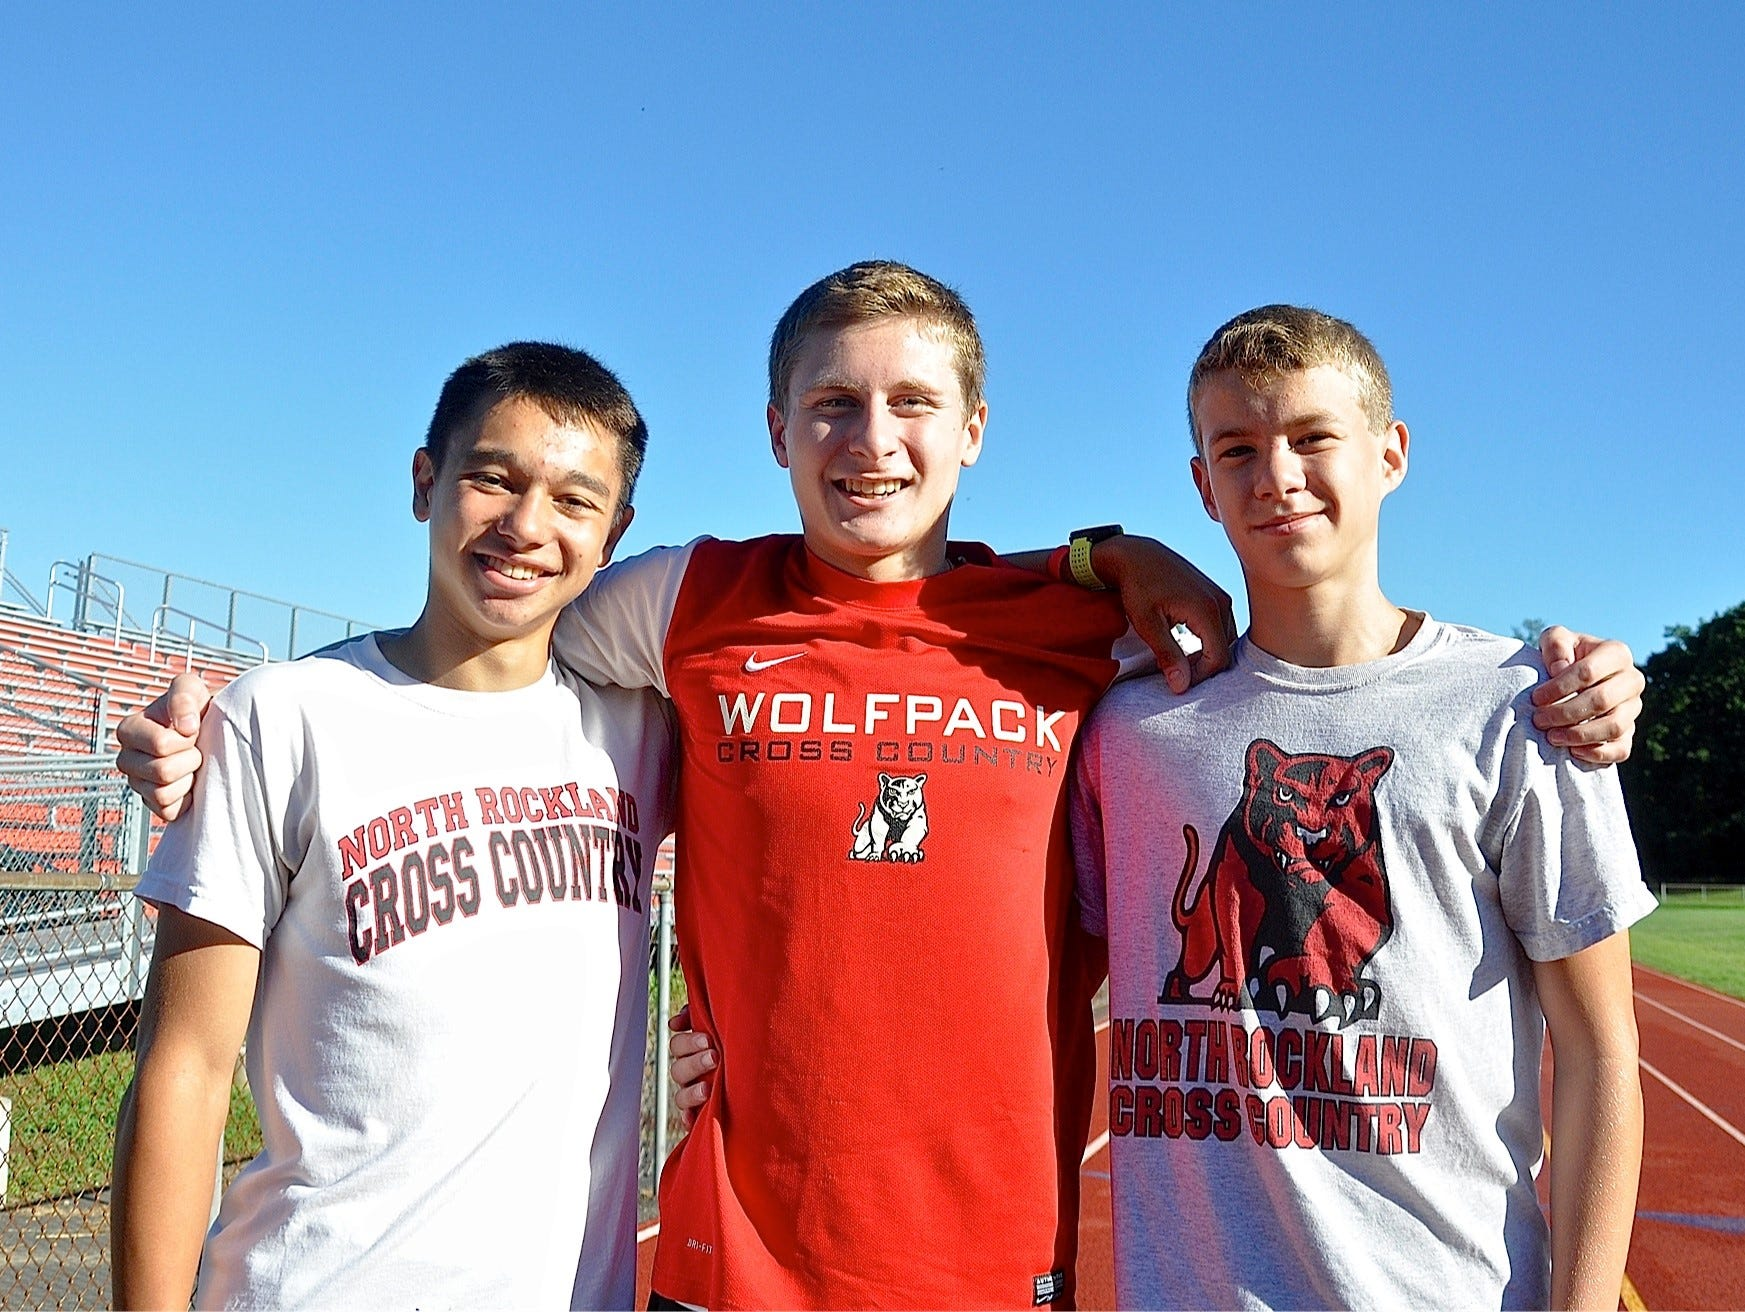 North Rockland's Ryan Guzinski, Dylan Serino and Patrick Tuohy